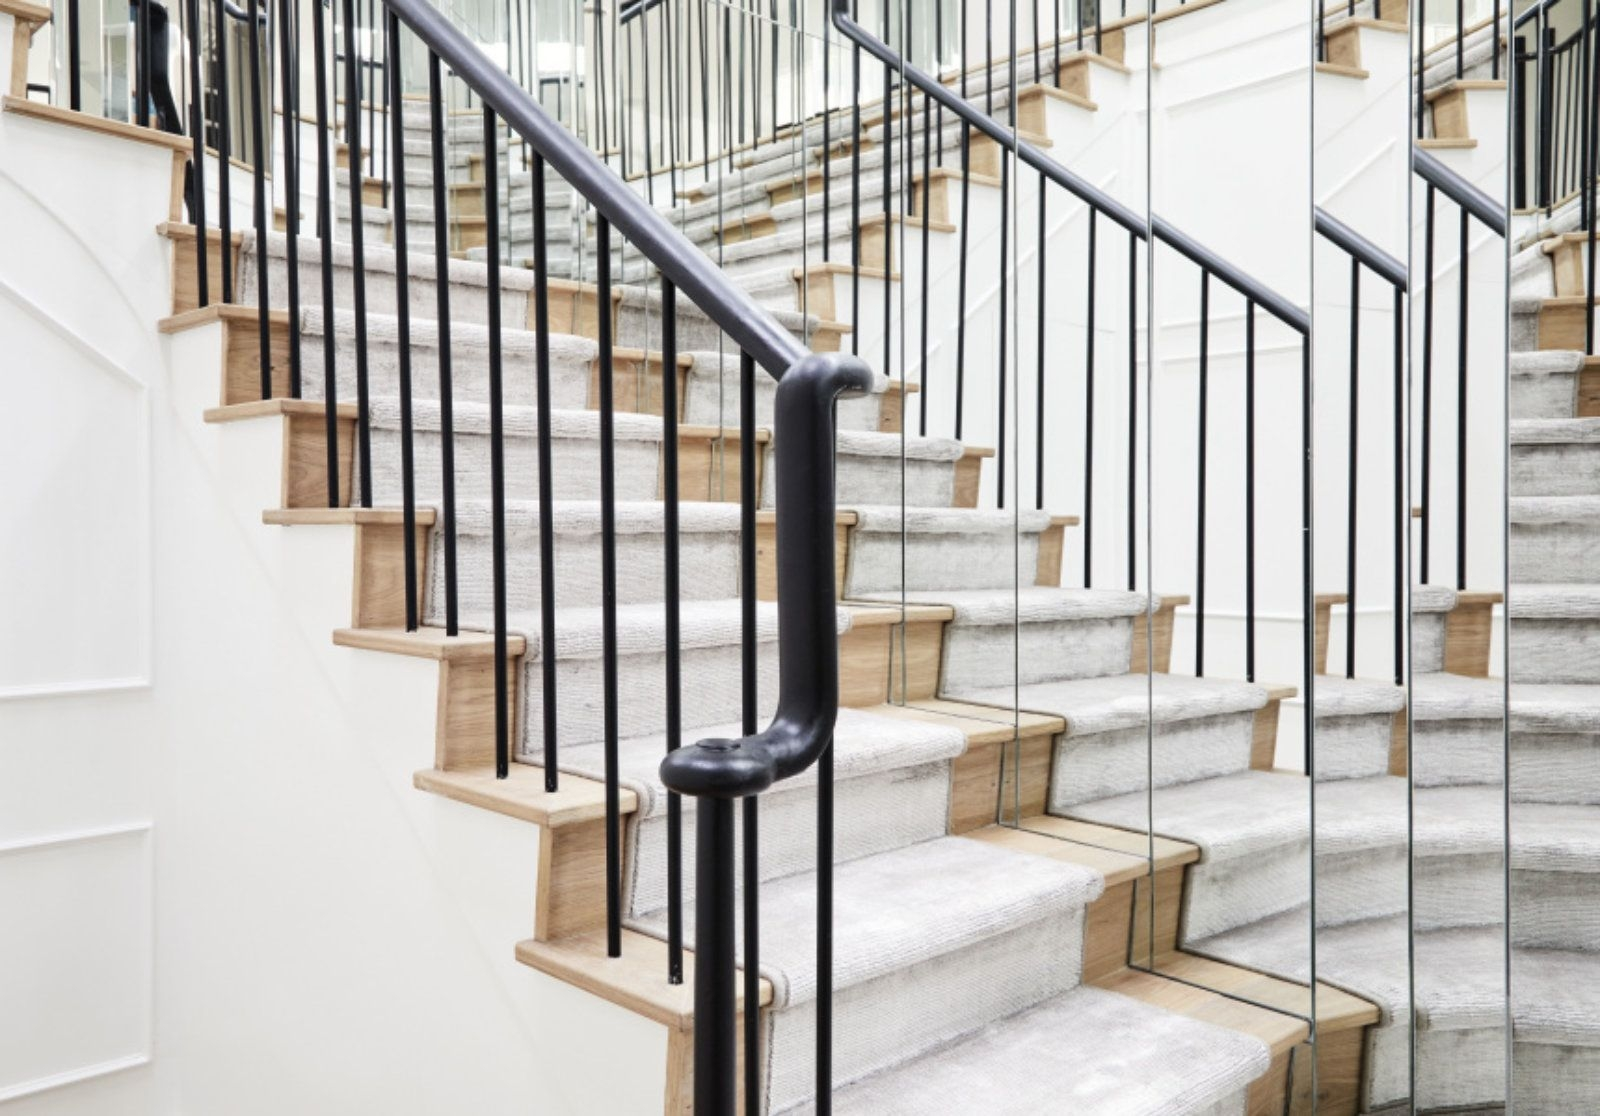 25 Unique Stair Designs Beautiful Stair Ideas For Your House   Steel Design For Stairs   Spiral   Elegant Steel   Architectural Steel   Simple   Stringer